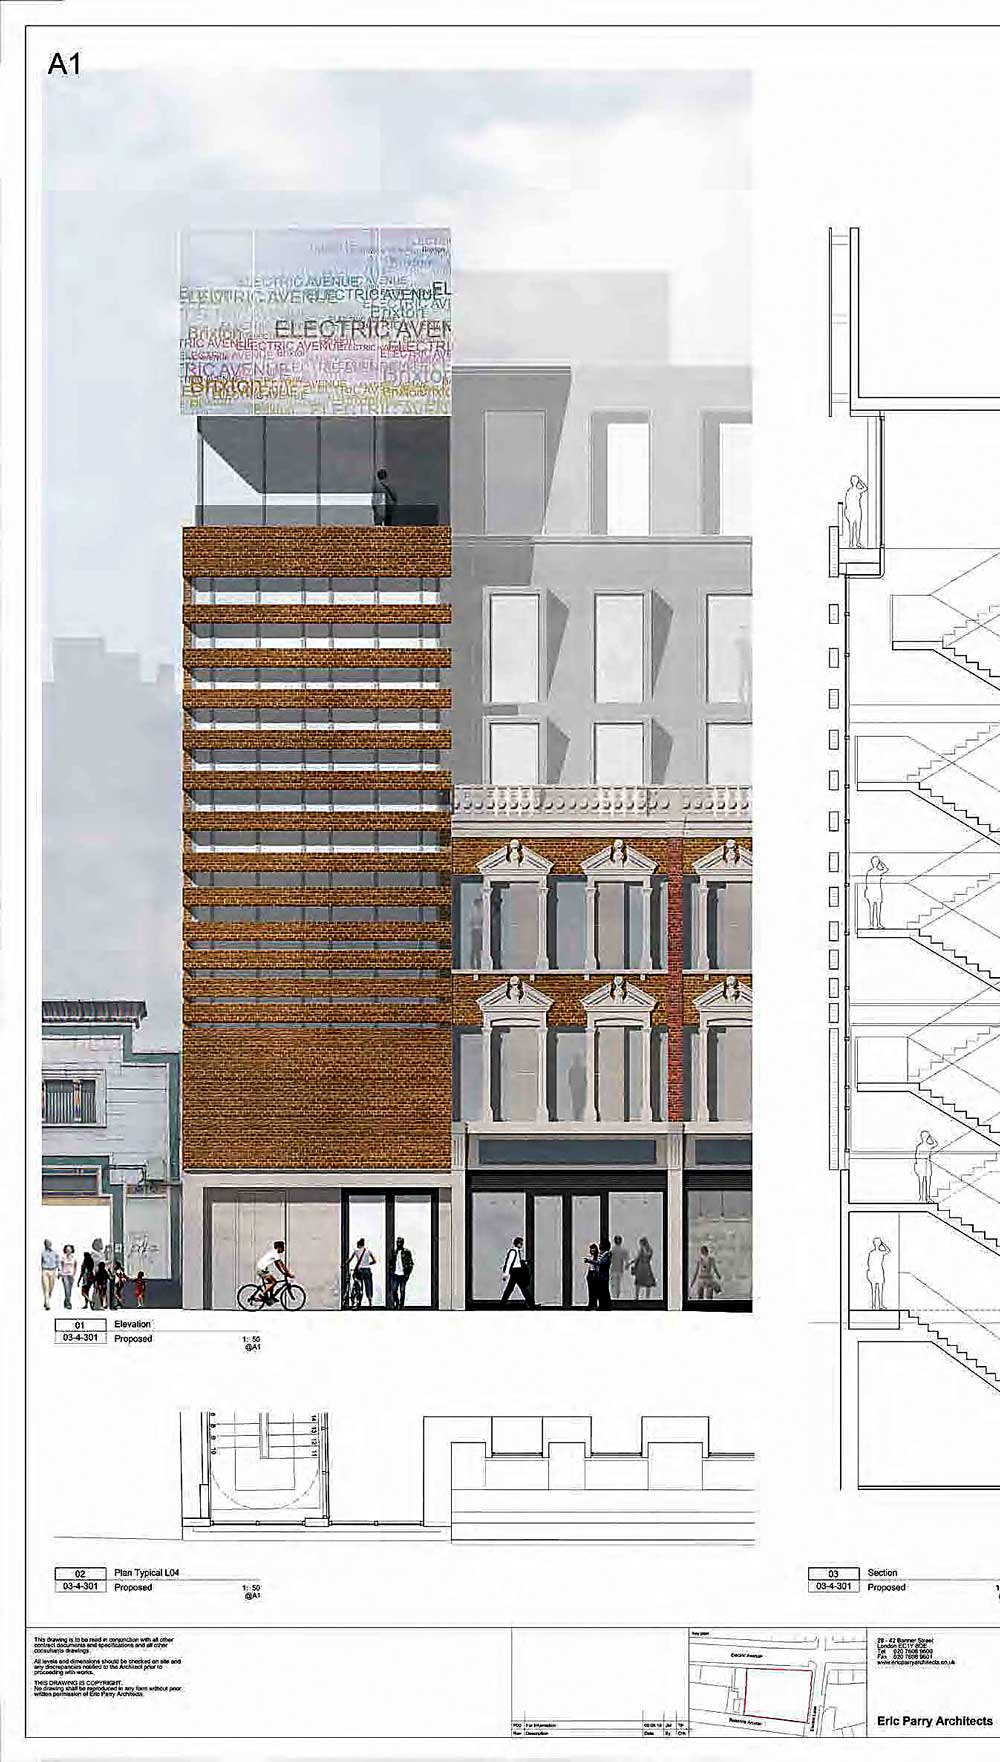 Architect drawing of proposed building for corner of Electric Avenue